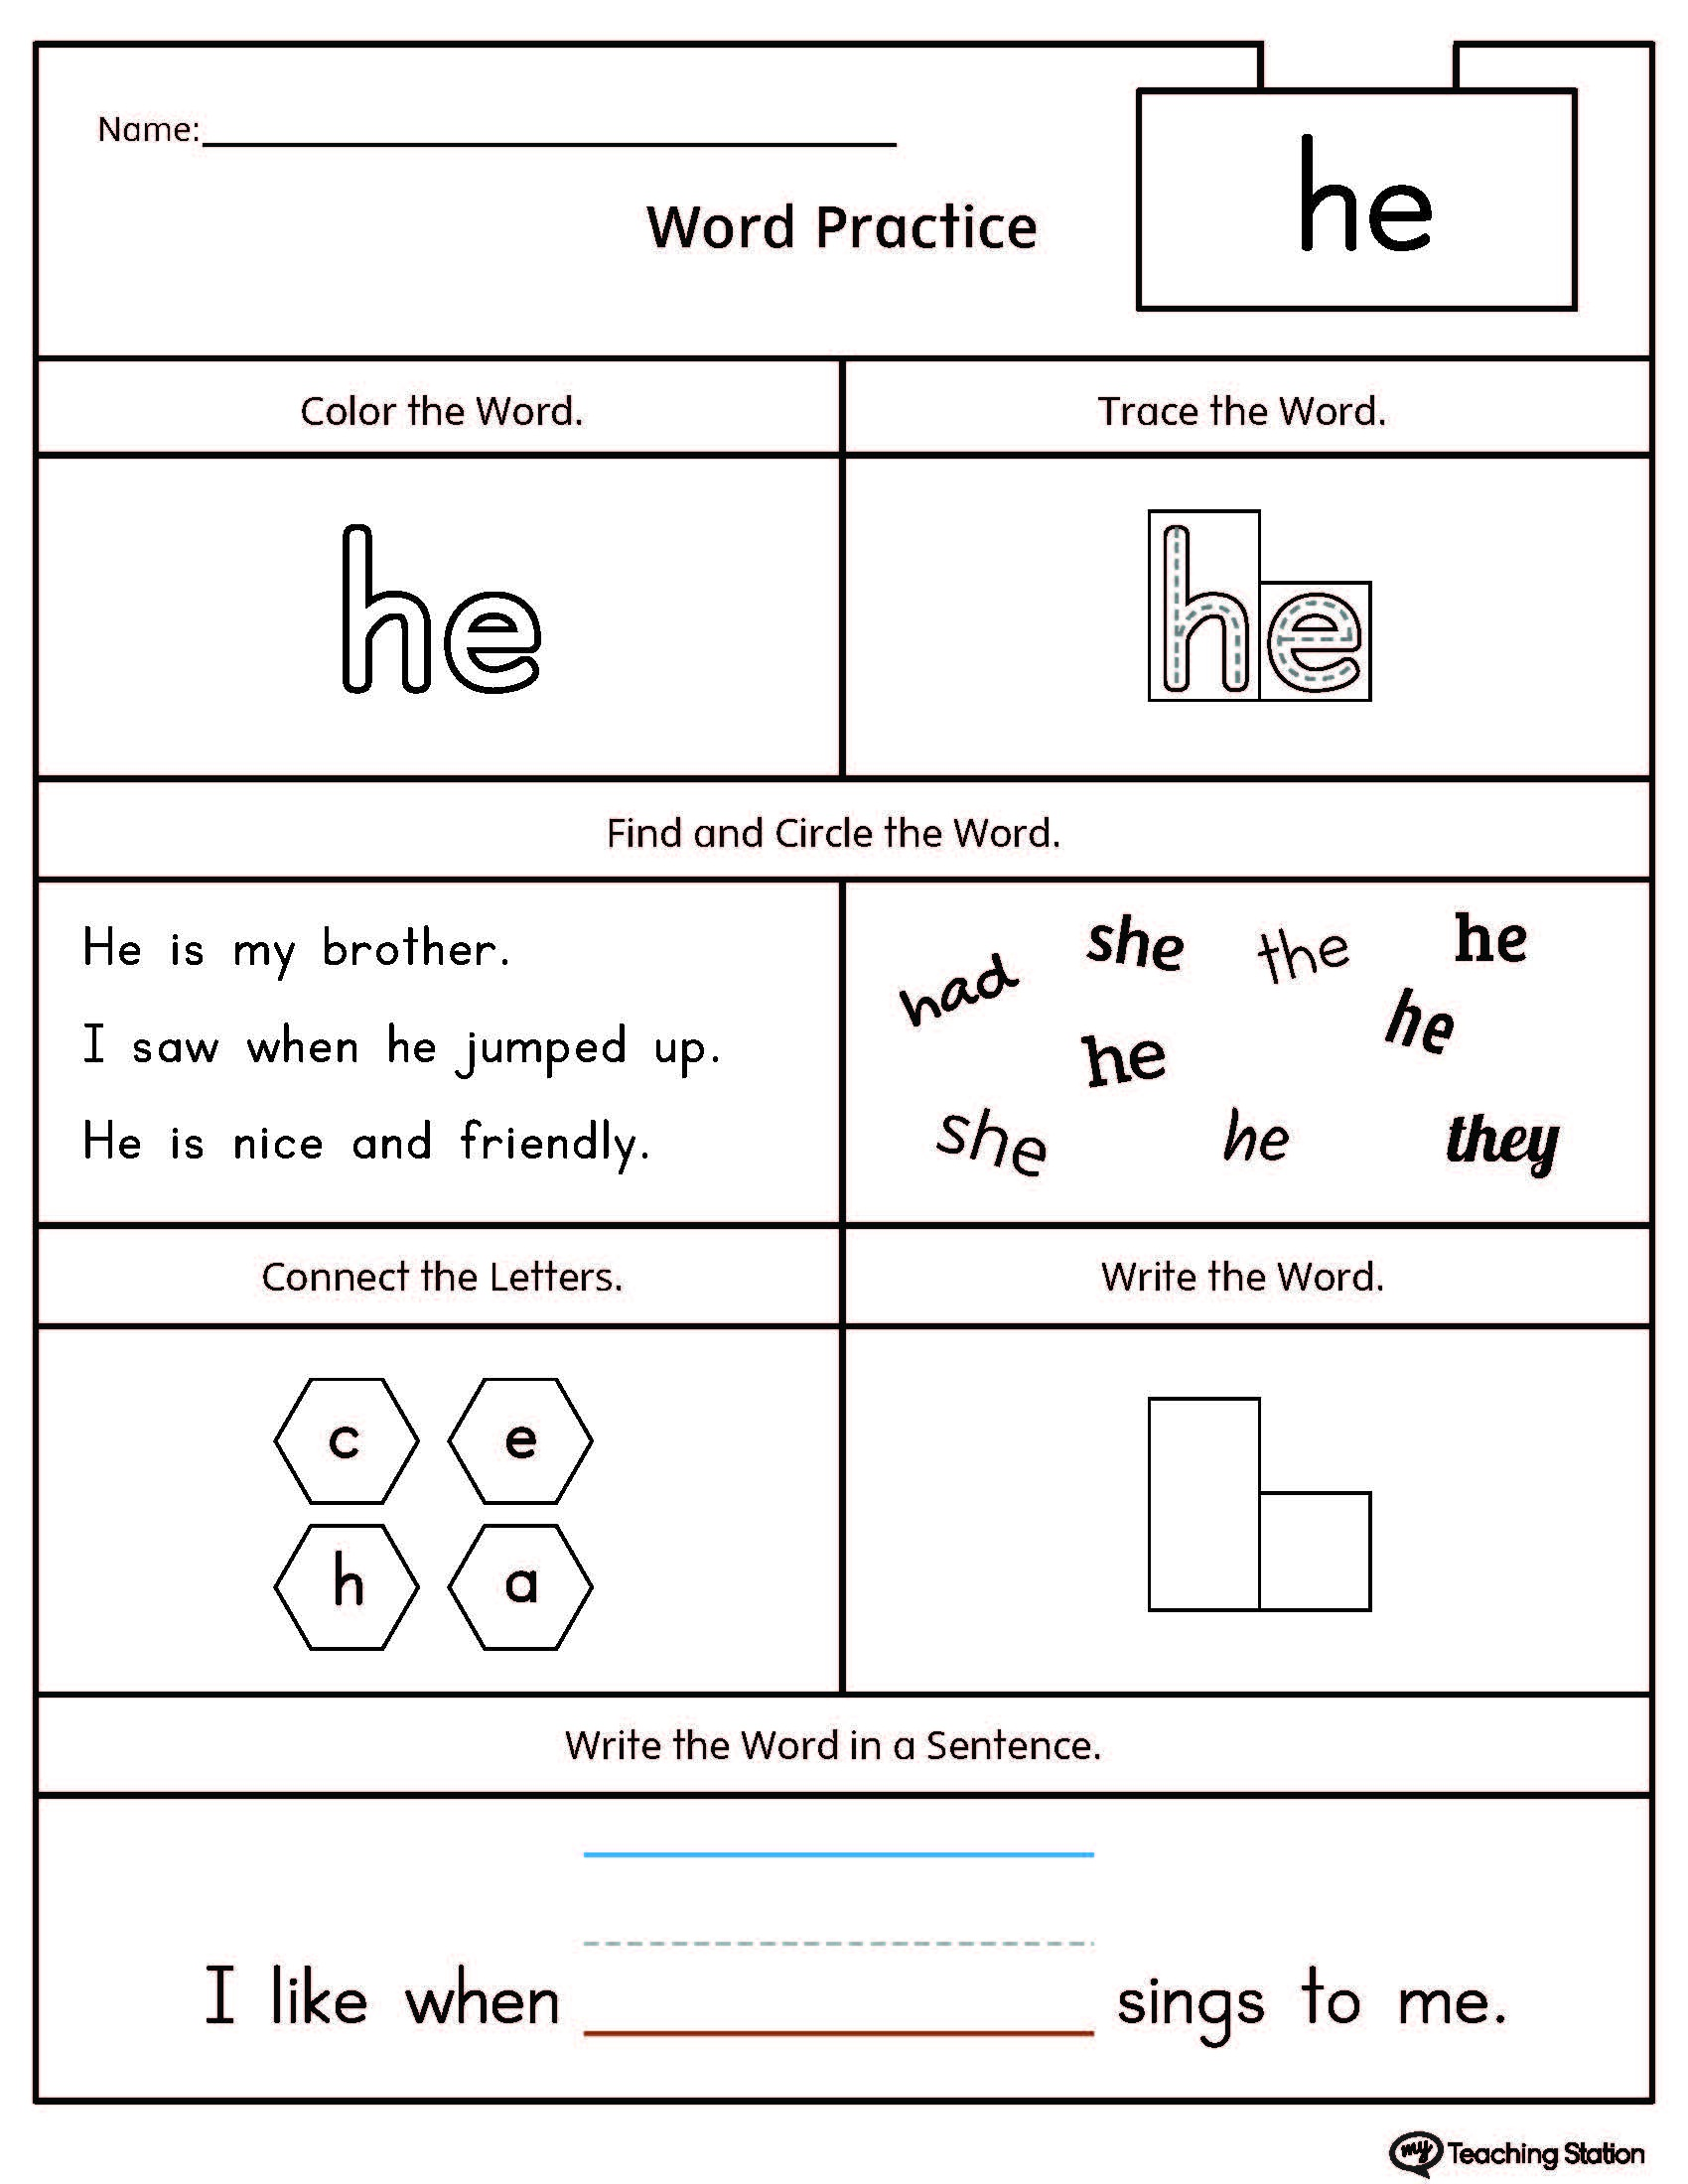 High Frequency Words Printable Worksheets | Myteachingstation - Free Printable Sight Word Worksheets